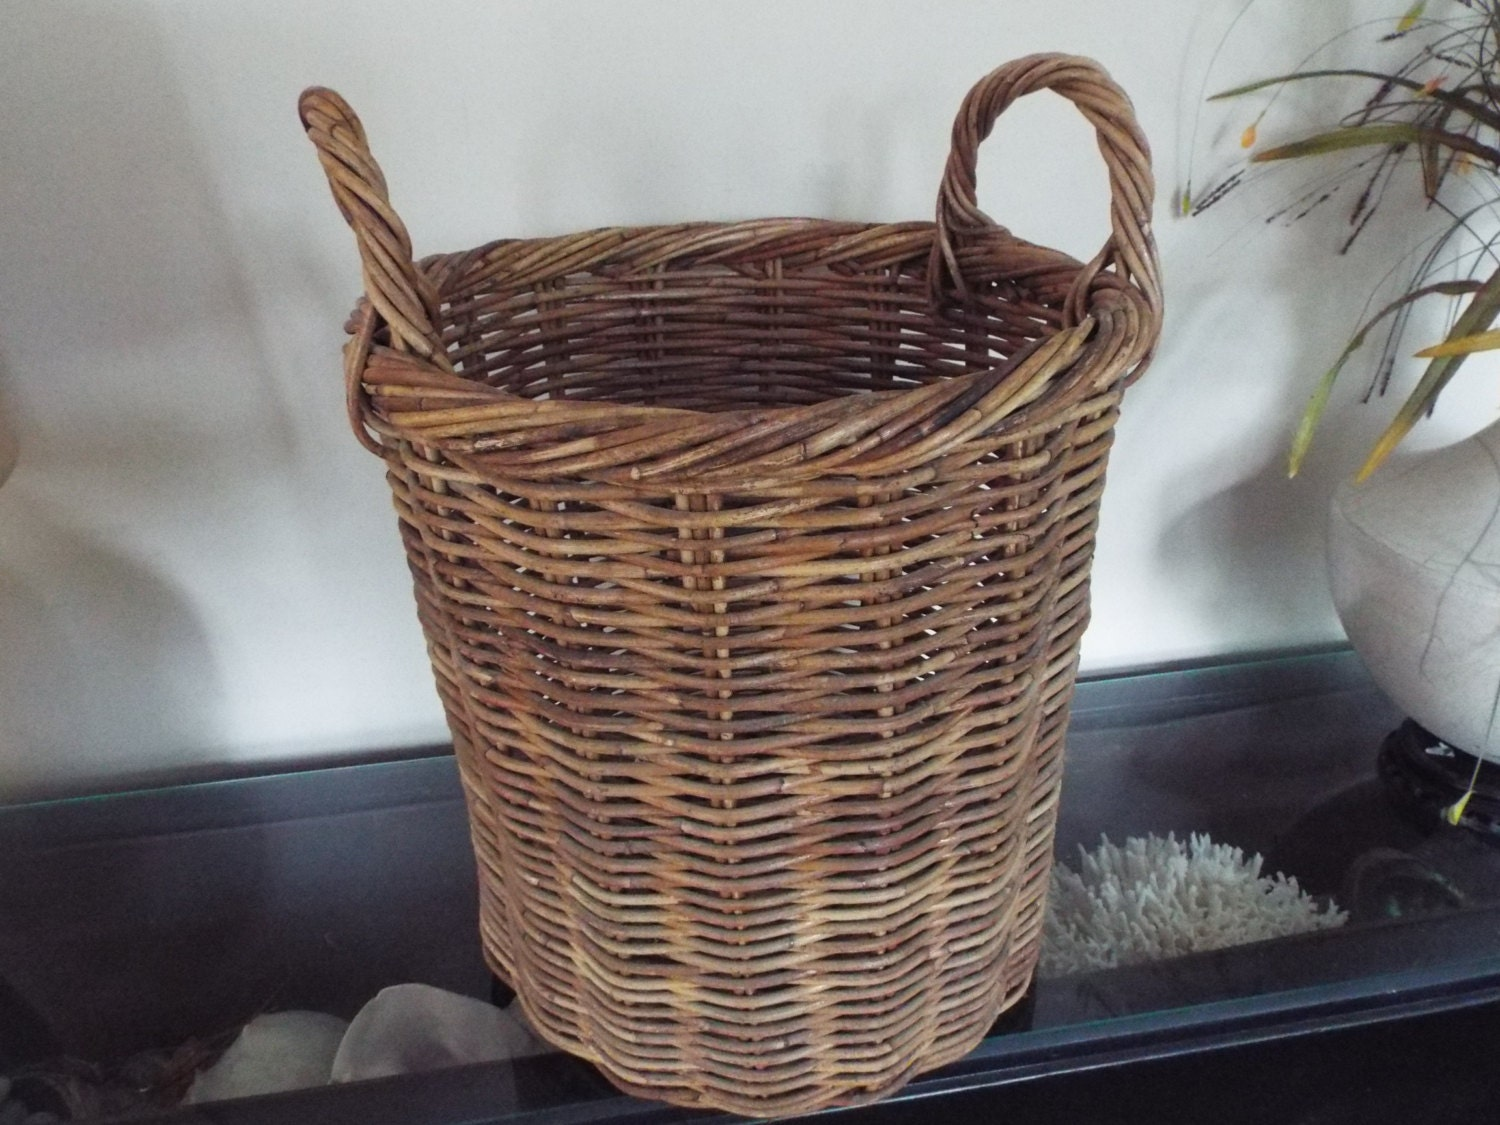 Round Wicker Baskets With Handles : Large tall round woven wicker baquette basket handles